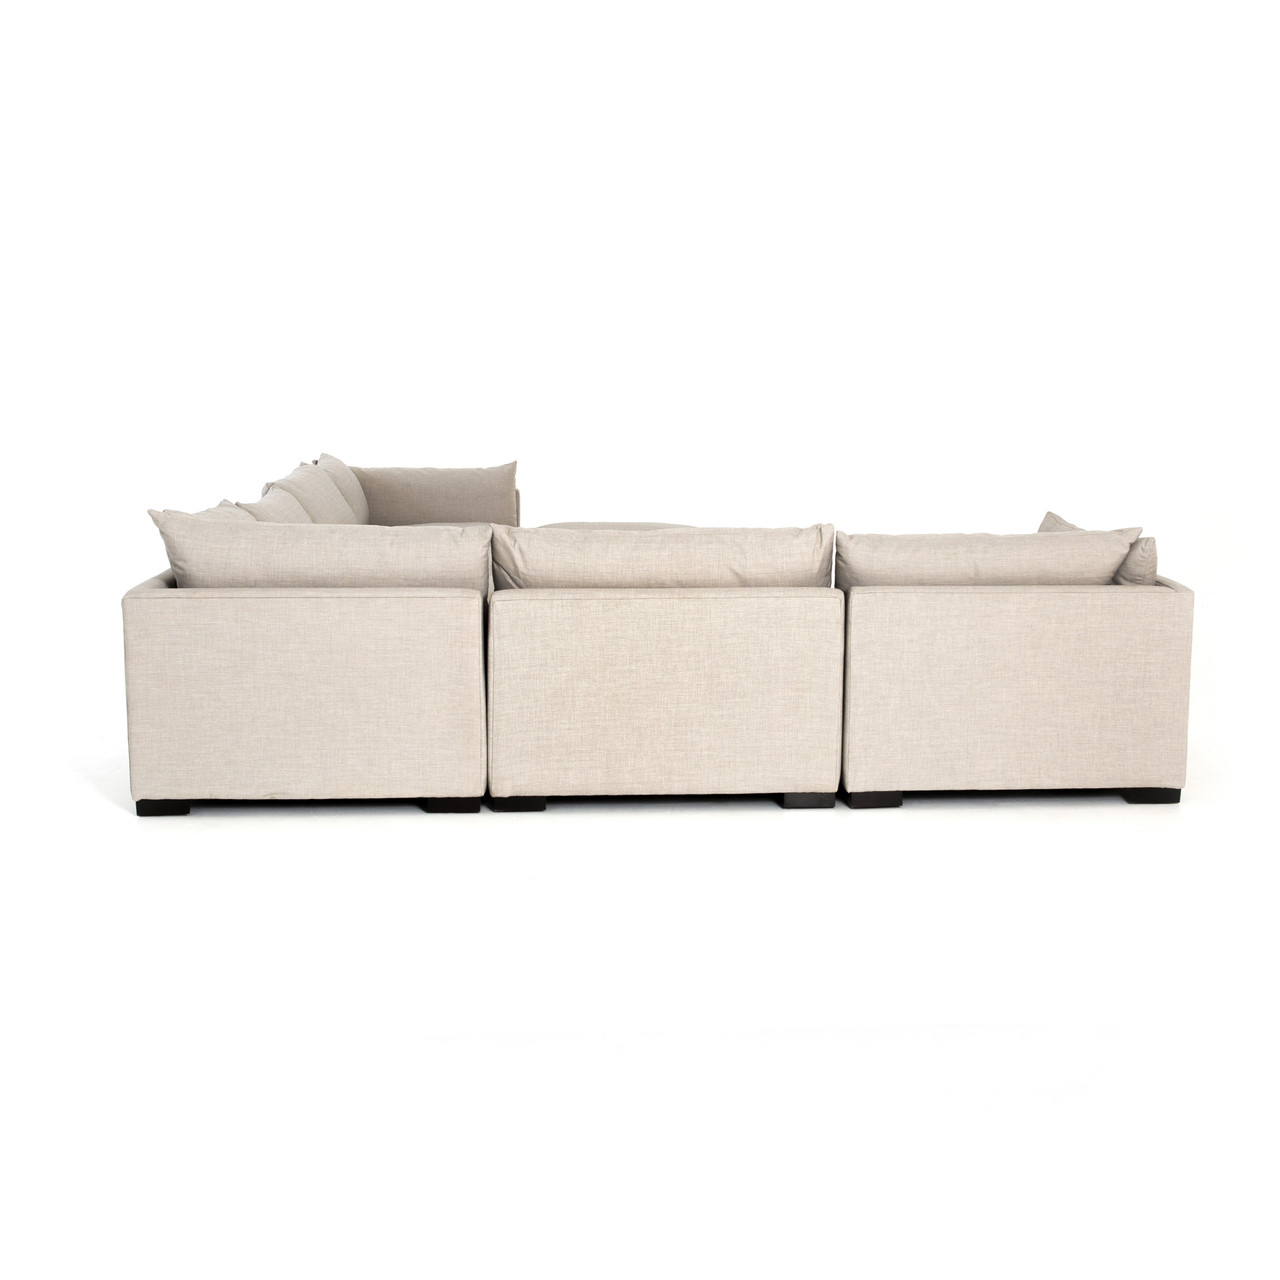 Zoe 6 - PC Sectional W/ Ottoman - Bm